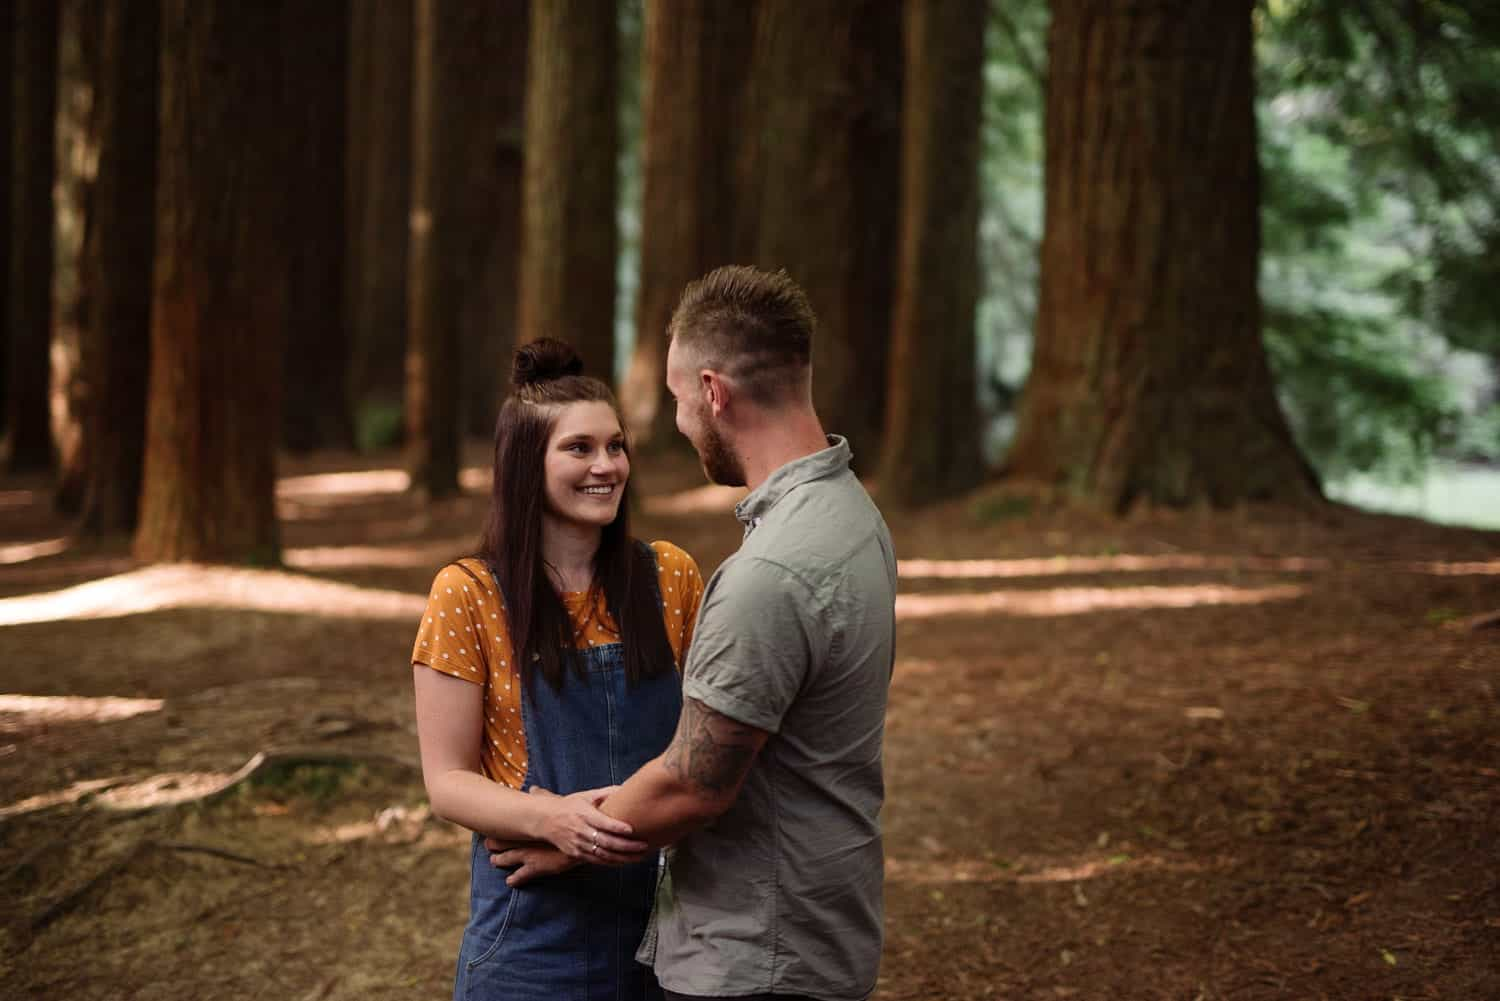 Redwood engagement photograph of Chelsea and Luke amongst Redwood trees